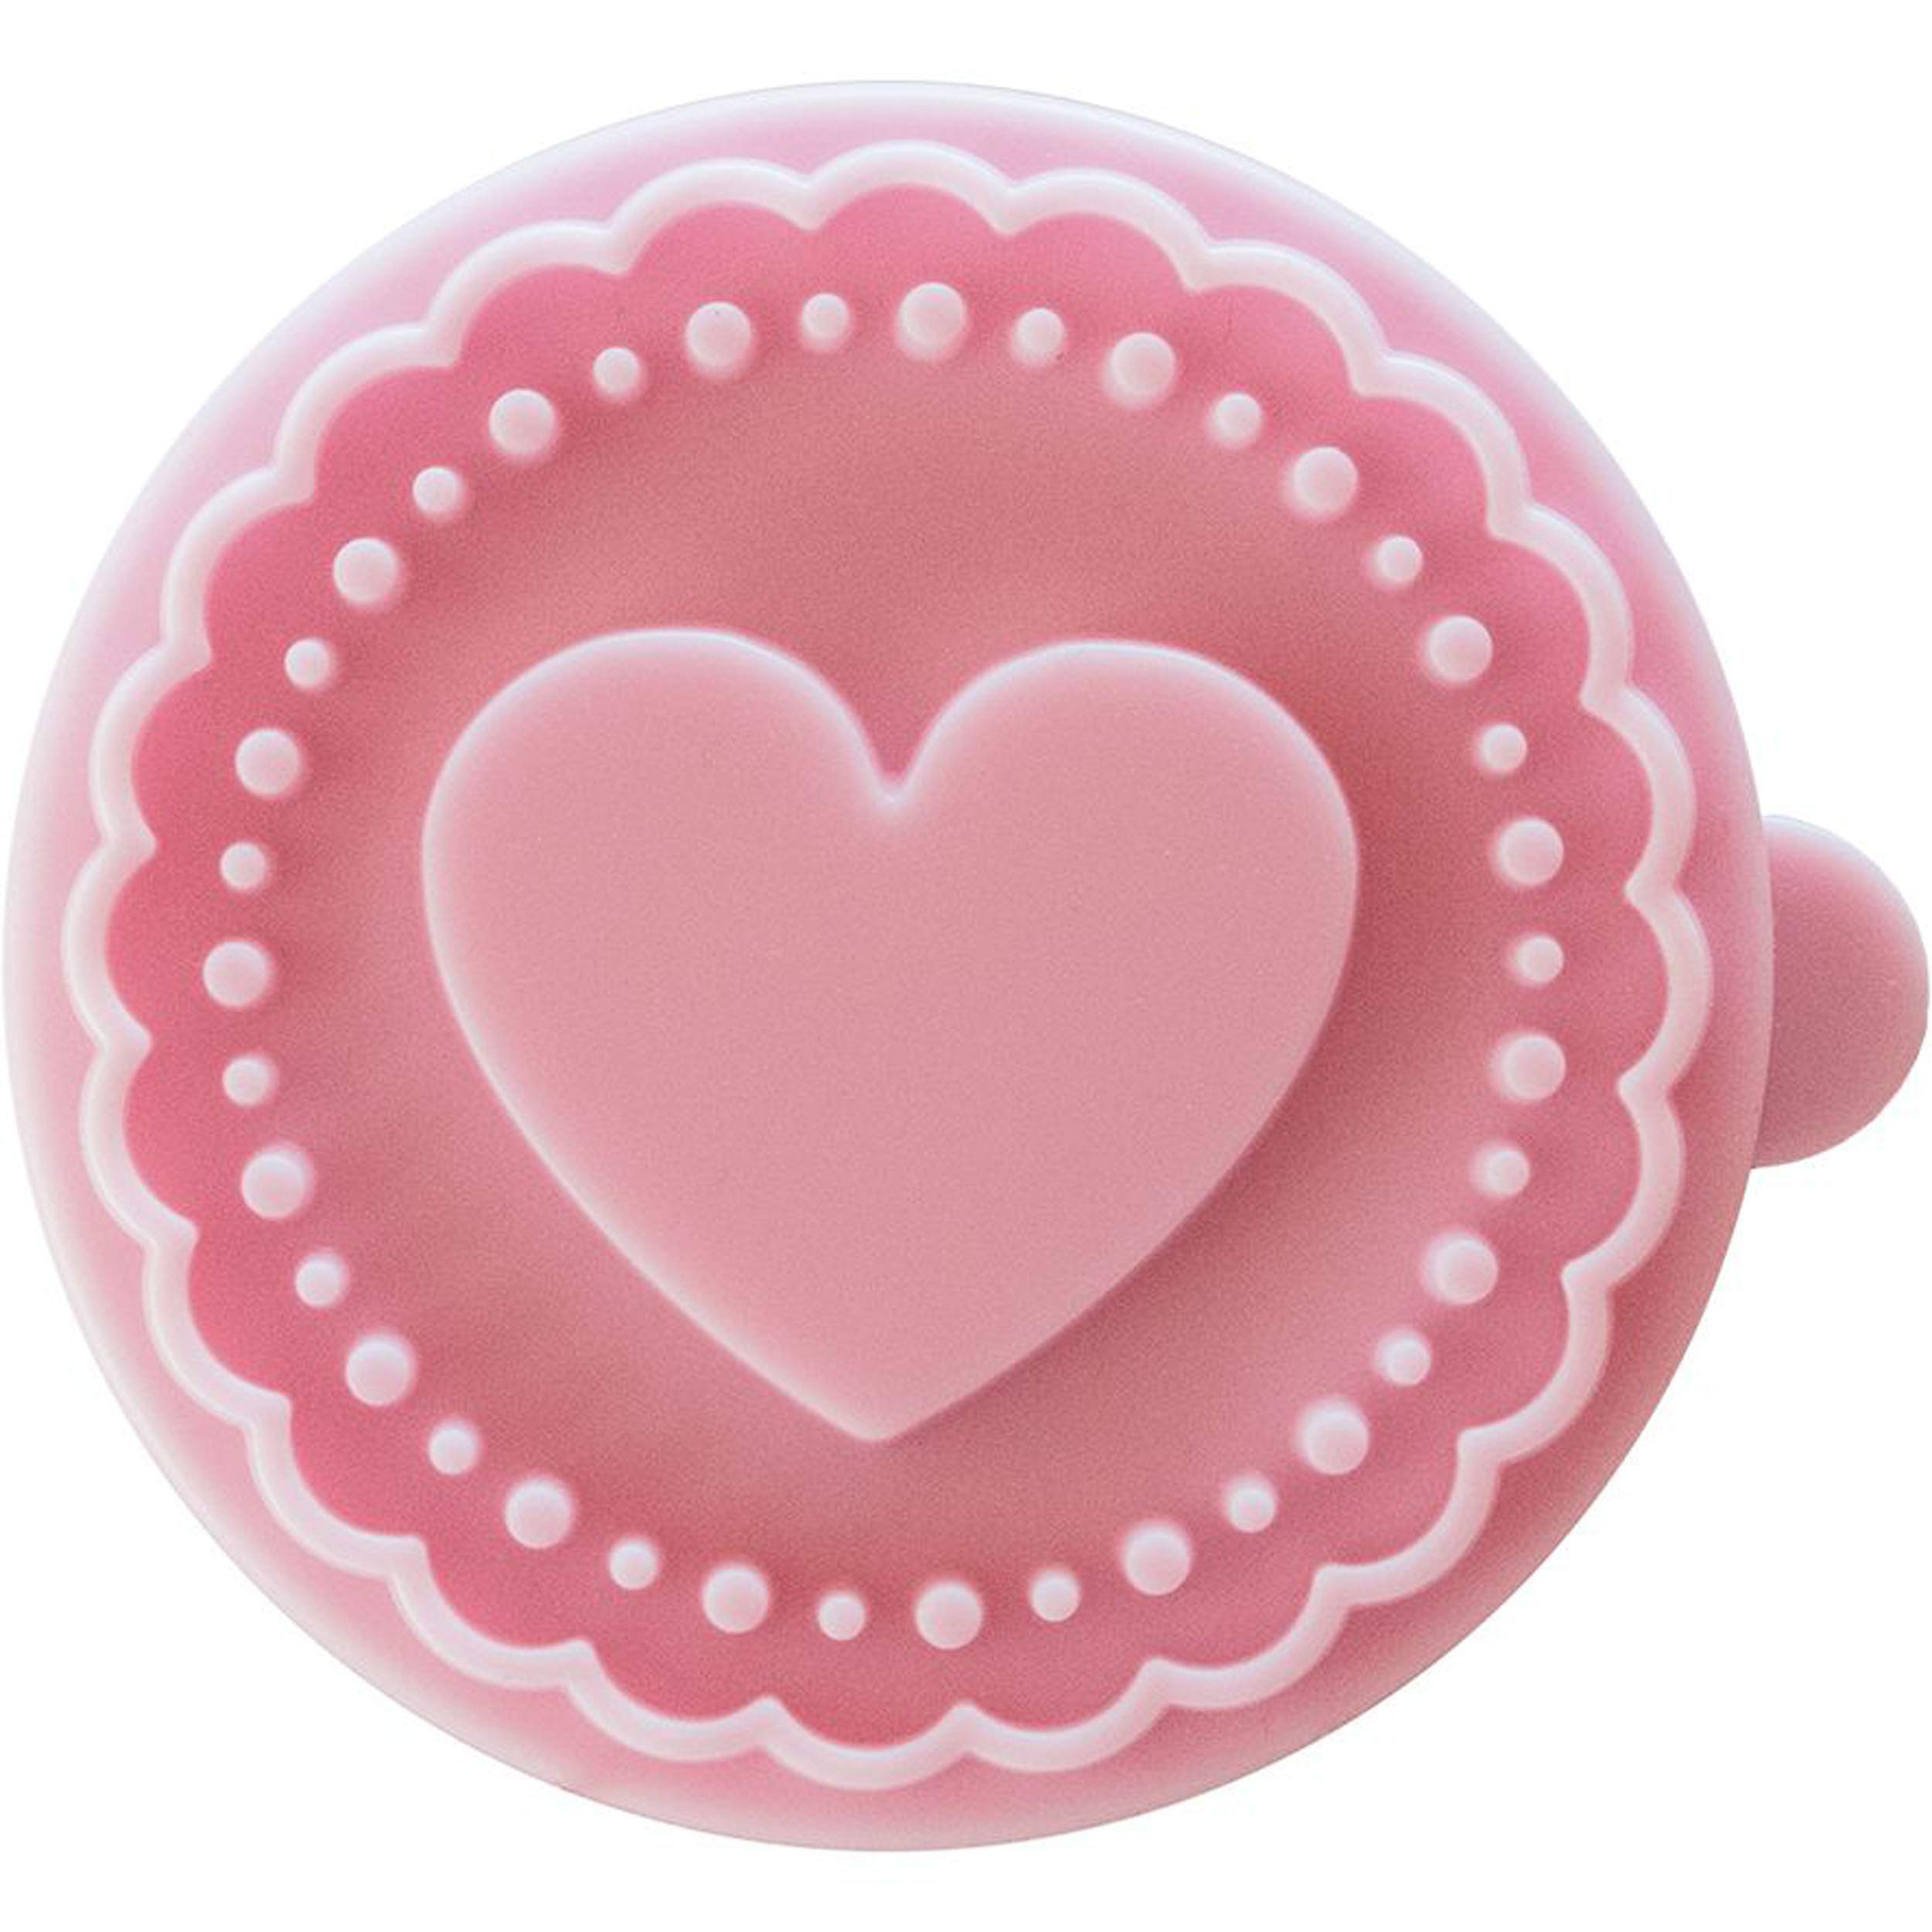 Heart Cookie Stamp - Wooden Handle with Silicone by rbv birkmann (Image #2)